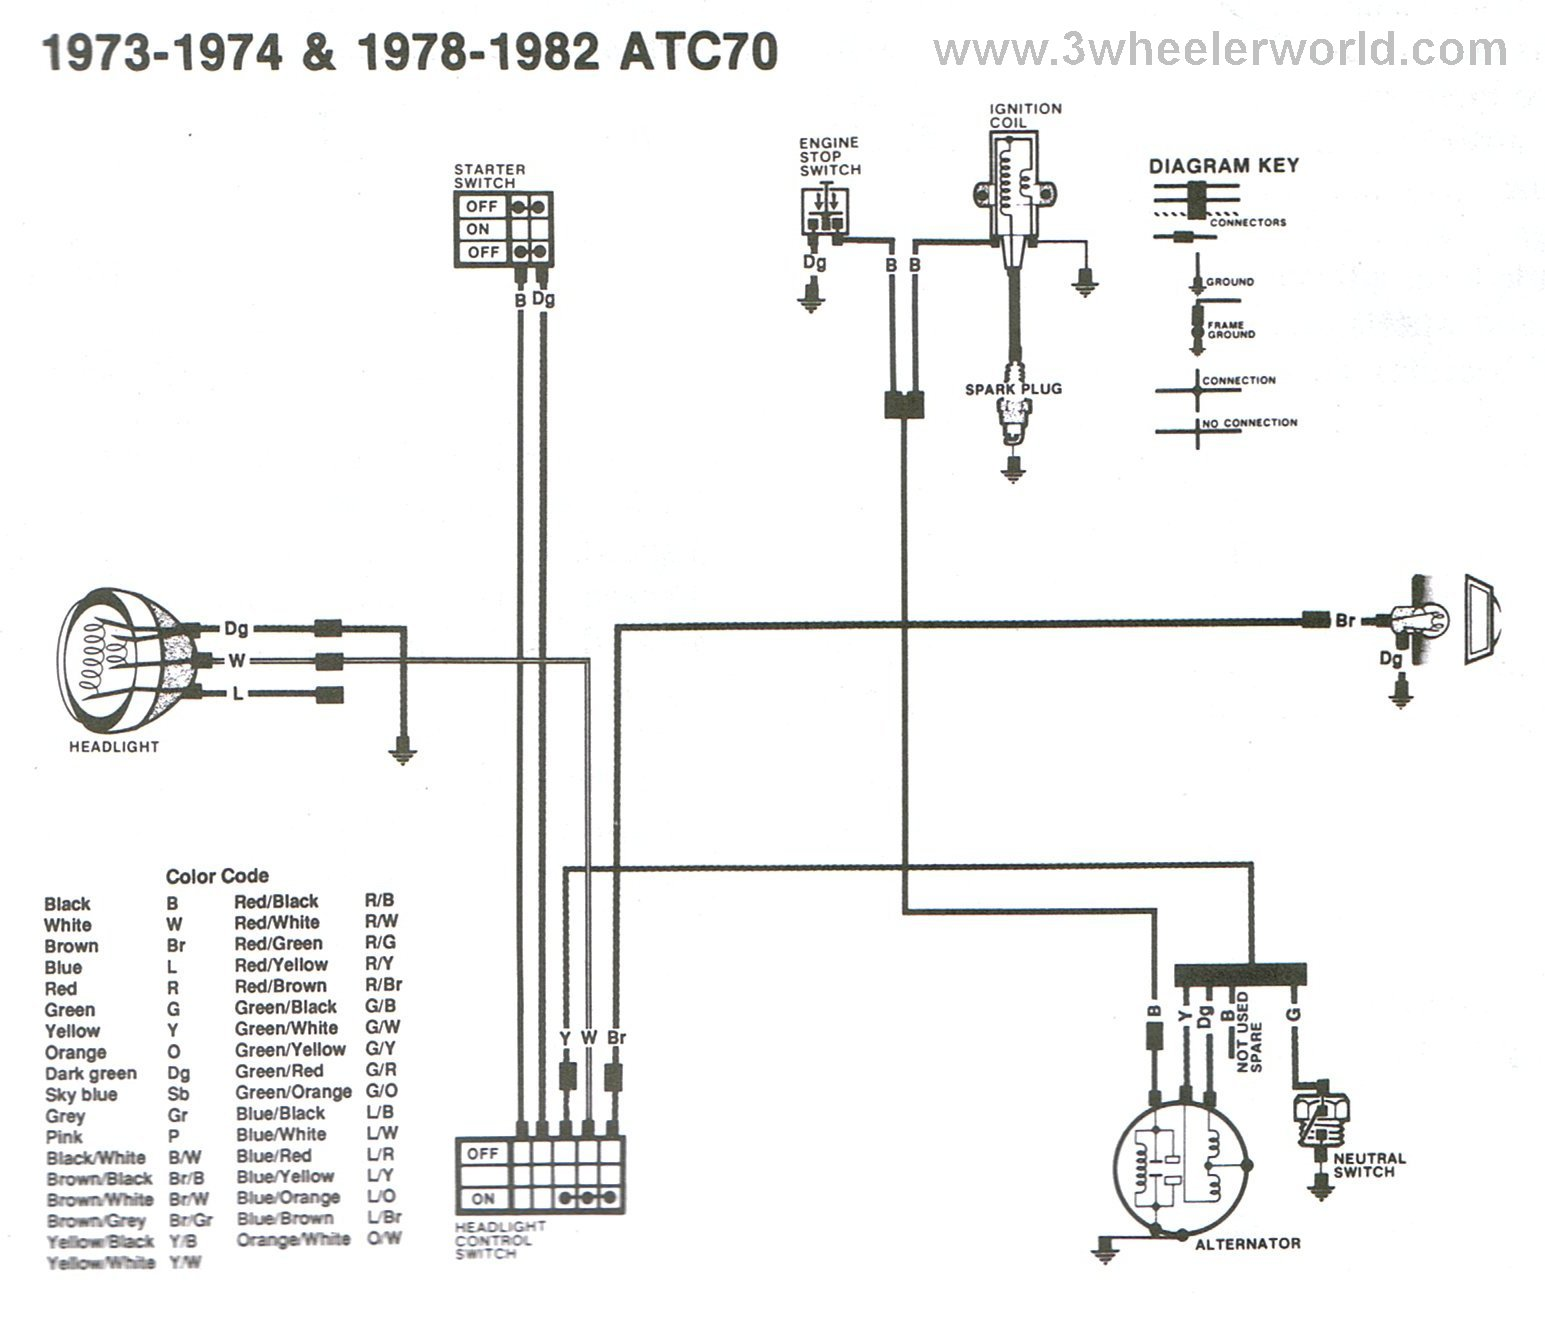 Trike Wiring Diagram And Schematics Mad Dog 3 Wheeler World Tech Help Honda Diagrams Rh 3wheelerworld Com Motor Boom